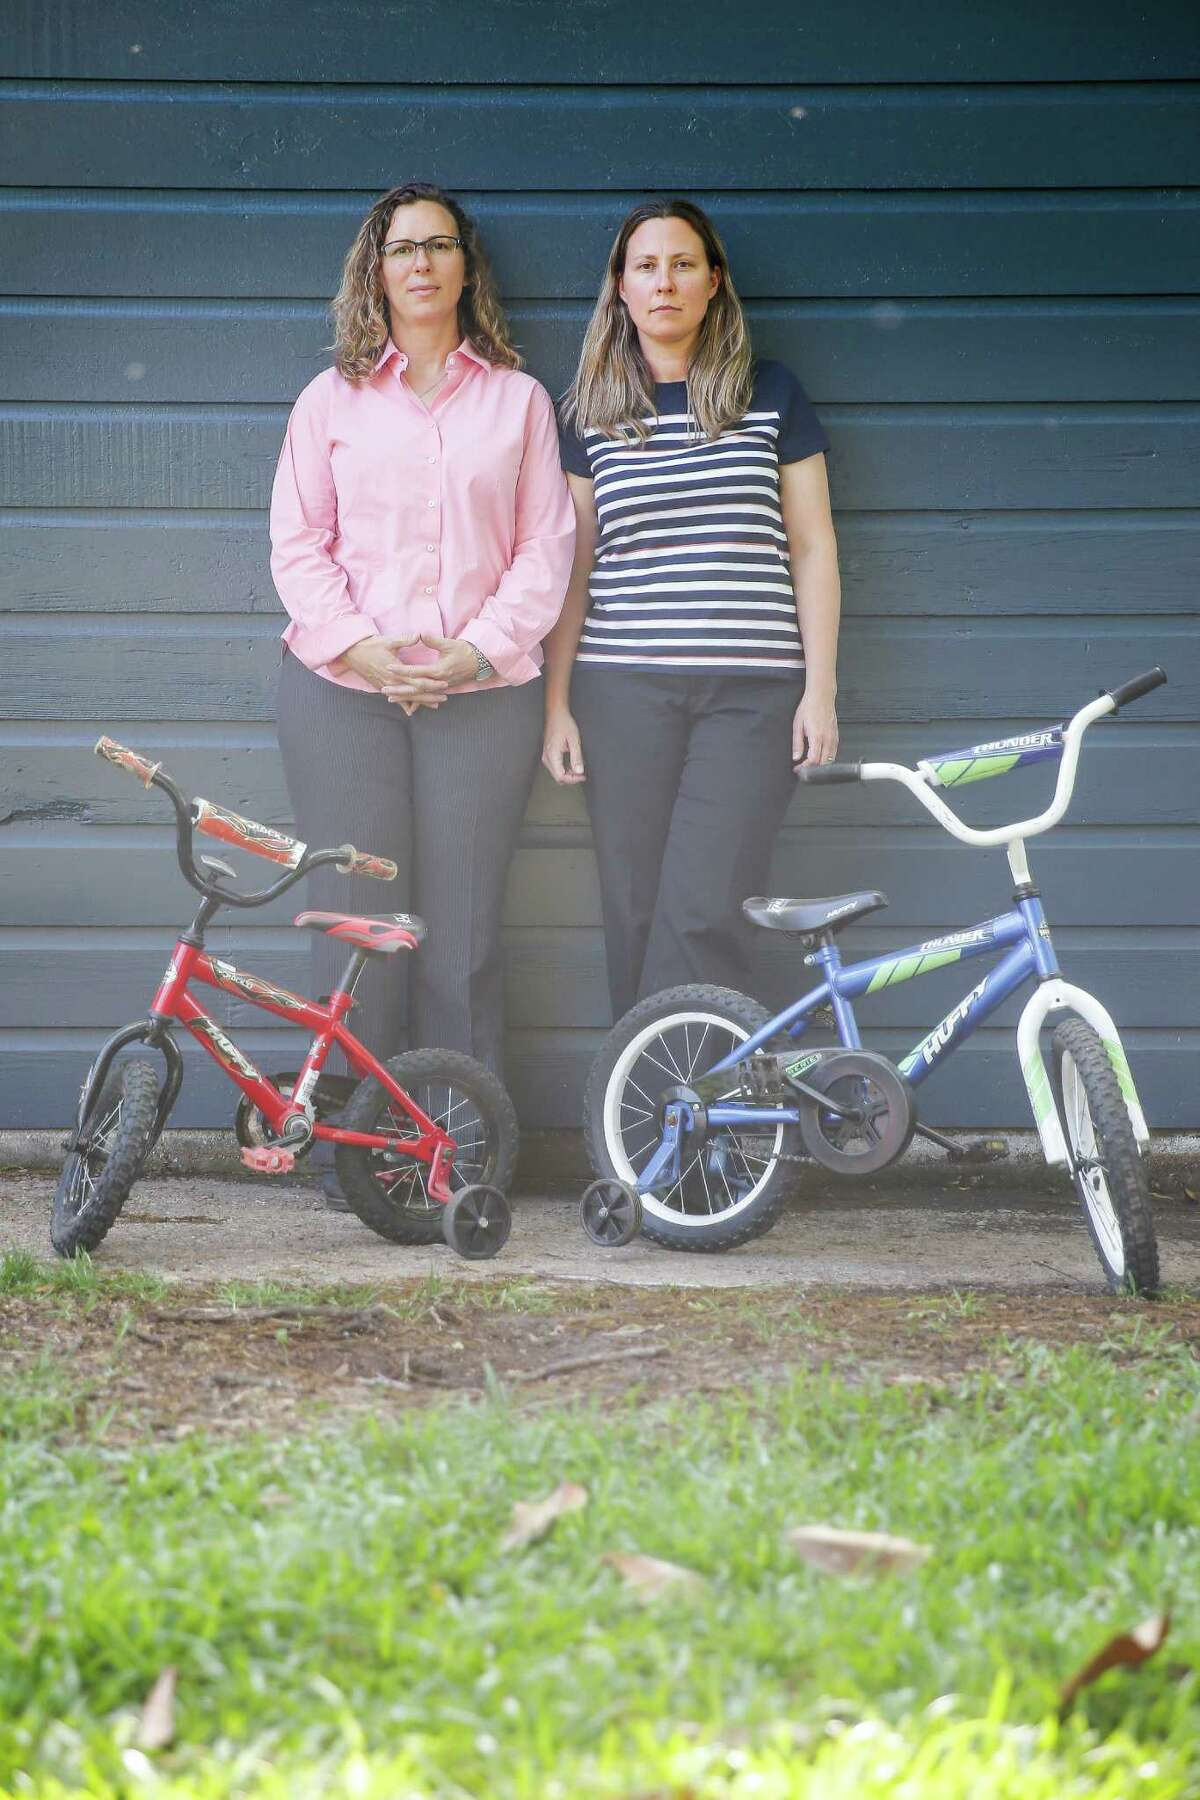 Foster parents Angela Sugarek, left, and Carol Jeffery stand next to the bikes they bought their two foster children Wednesday, April 27, 2016 in Houston. The couple had the two bothers, ages three and four, taken away from them by Child Protective Services after reporting that they believed the younger child was being abused by an older brother. ( Michael Ciaglo / Houston Chronicle )